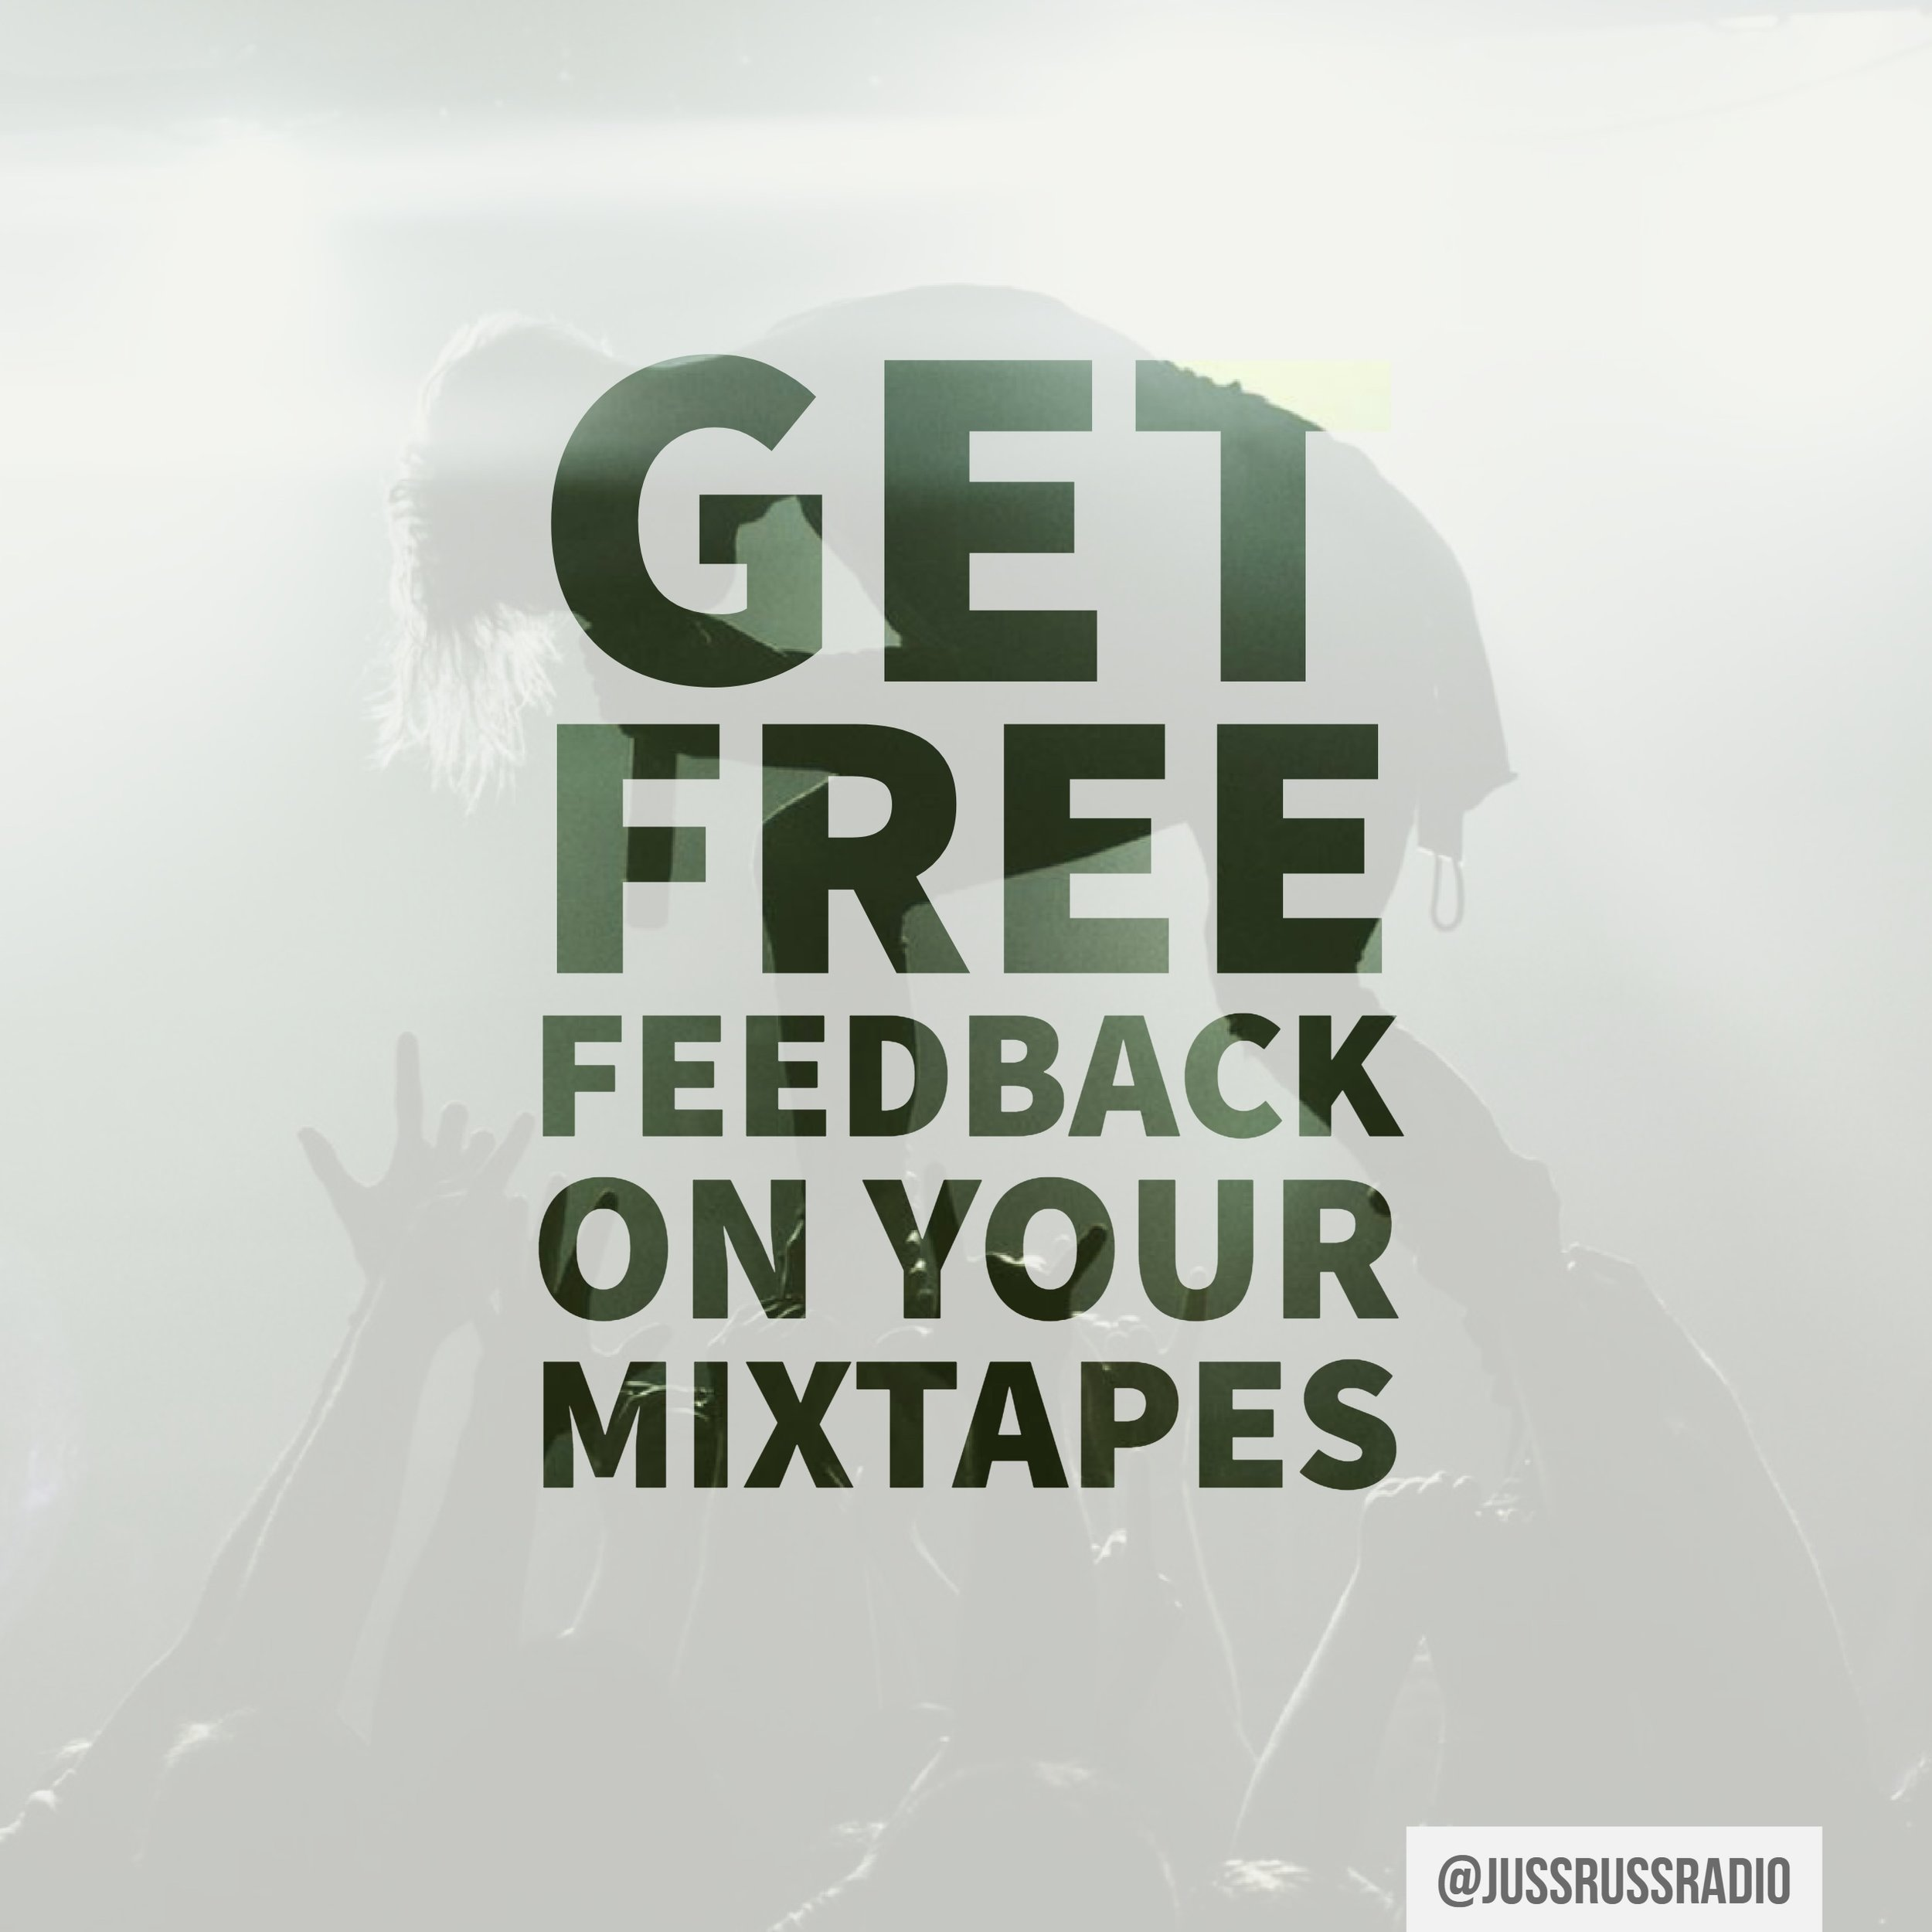 FREE FEEDBACK - Every company should offer their customers something for free with an incentive. Select the button below to be directed to our free Spinrilla promotion page that will allow you to take a few short steps in exchange for free in-depth feedback on your Spinrilla mixtapes.